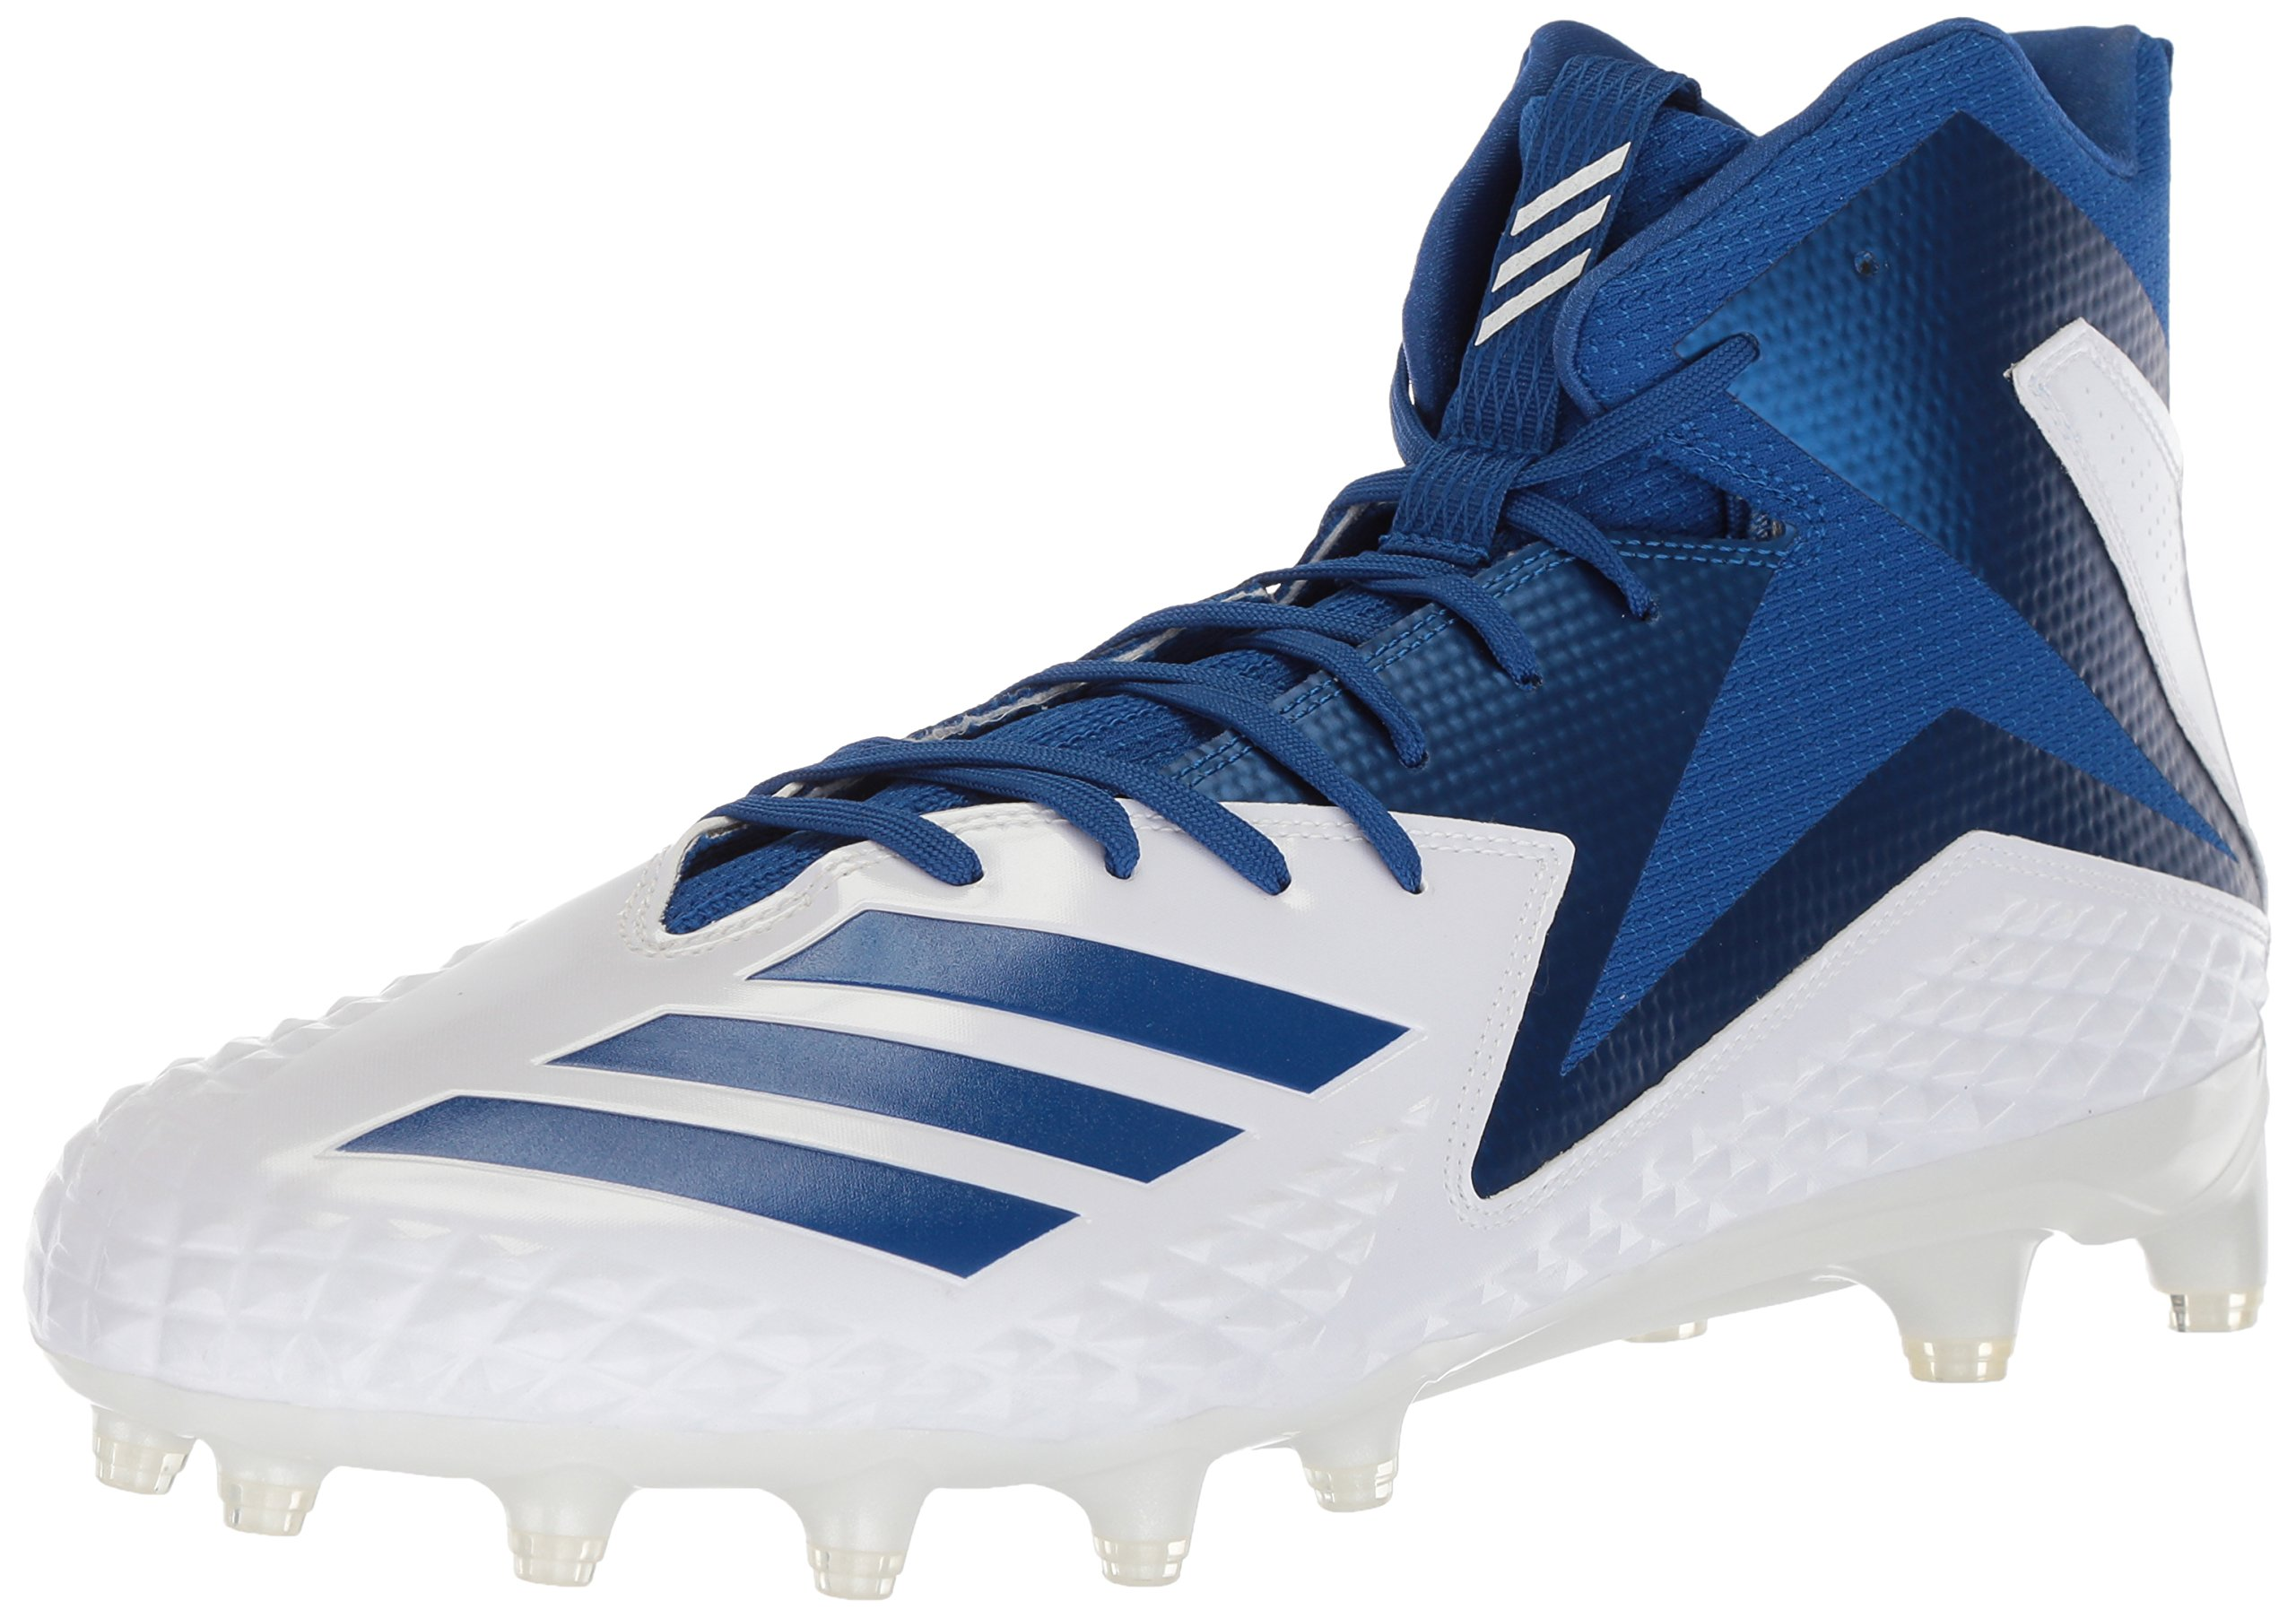 adidas Men's Freak X Carbon Mid Football Shoe, White/Collegiate Royal/Collegiate Royal, 13 M US